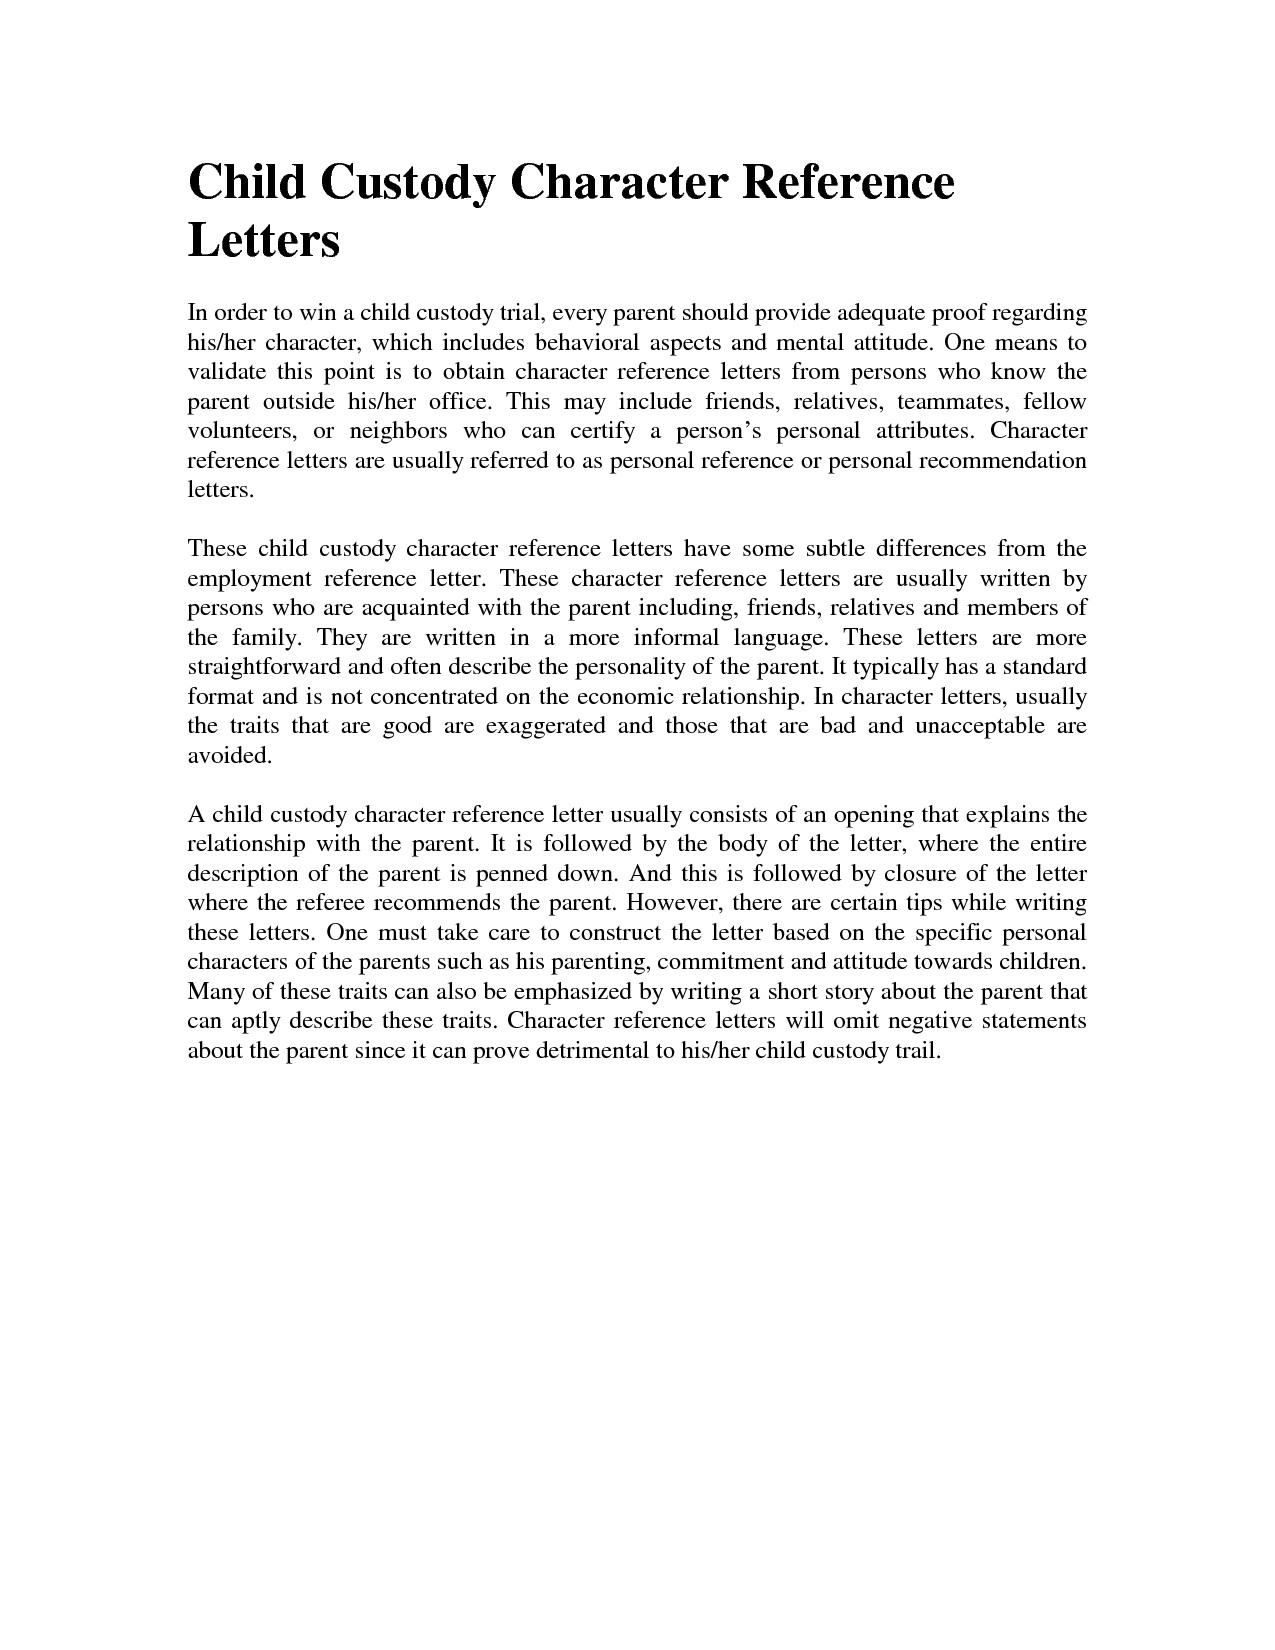 character reference letter court character reference letter for court child custody 20820 | sample character reference for court new sample character reference of character reference letter for court child custody template 1